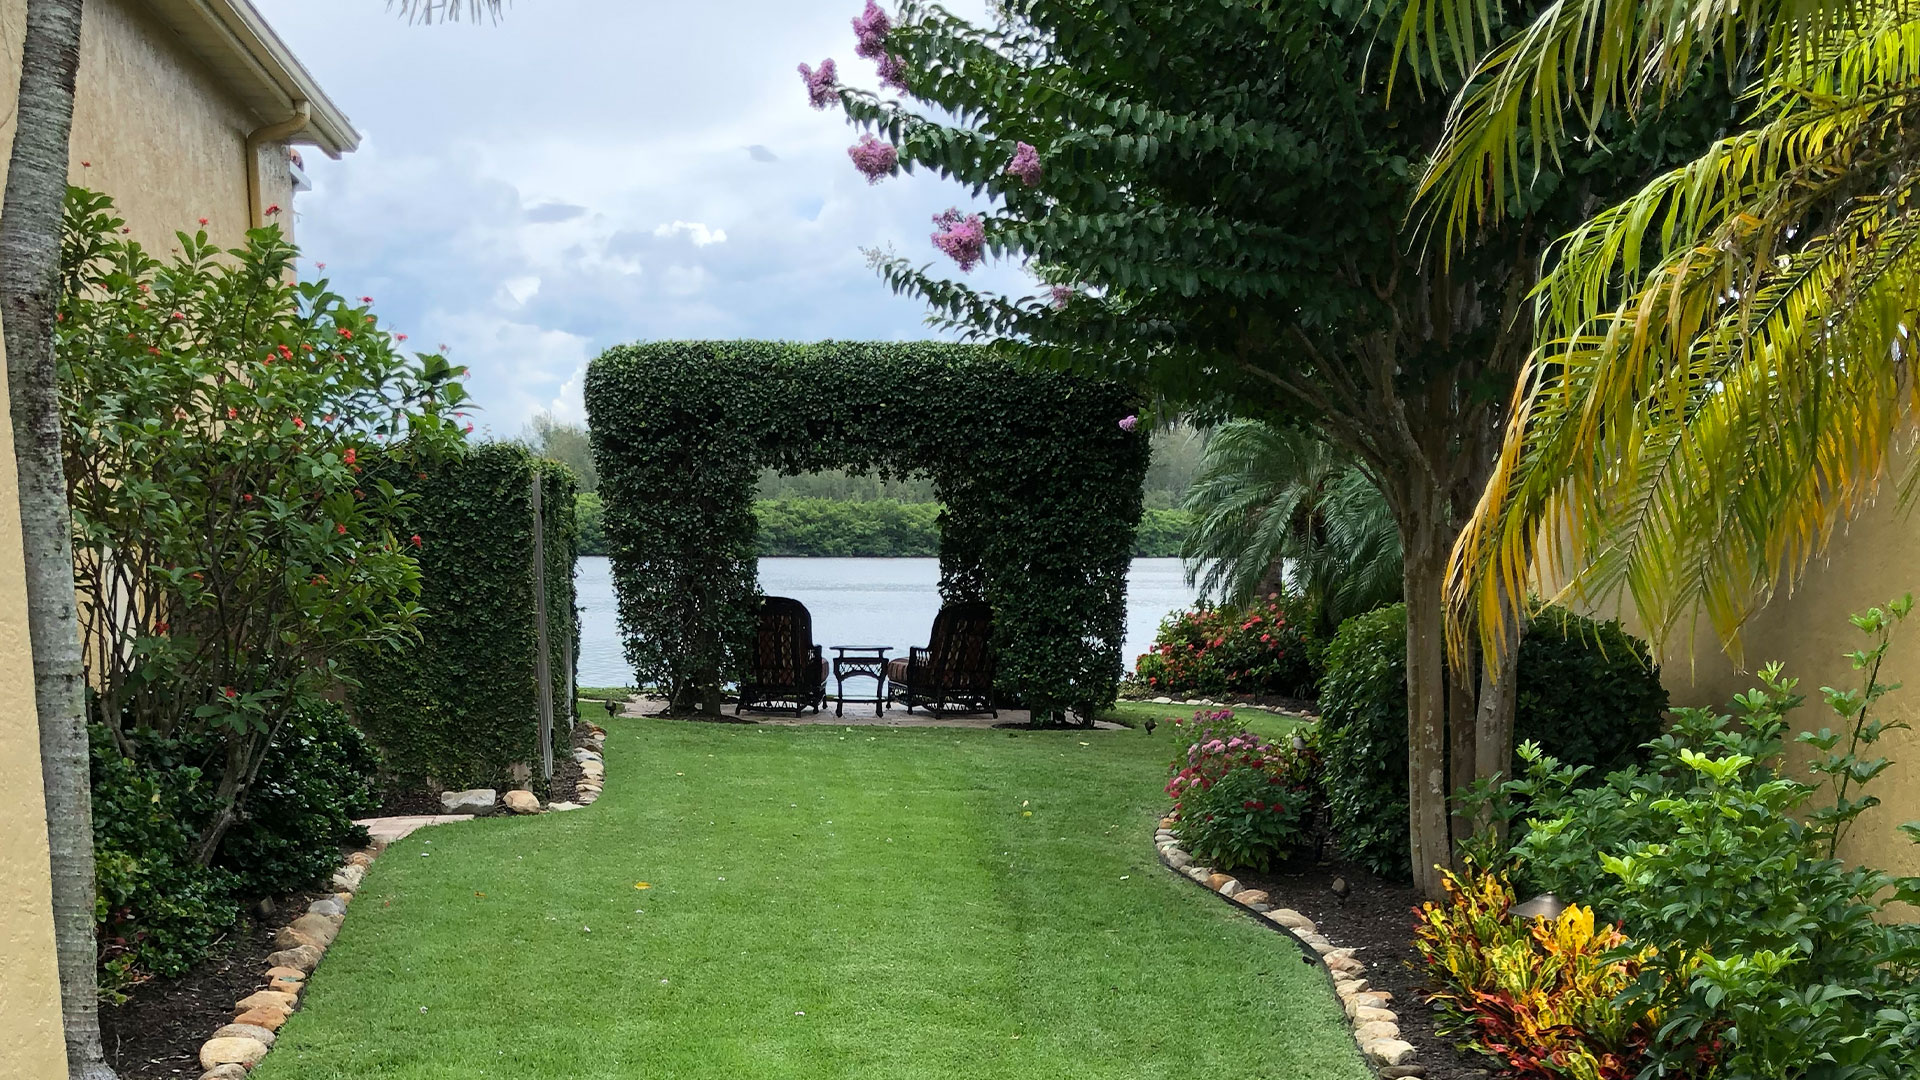 An ornamental shrub trimmed into an archway in the lawn next to a lake.